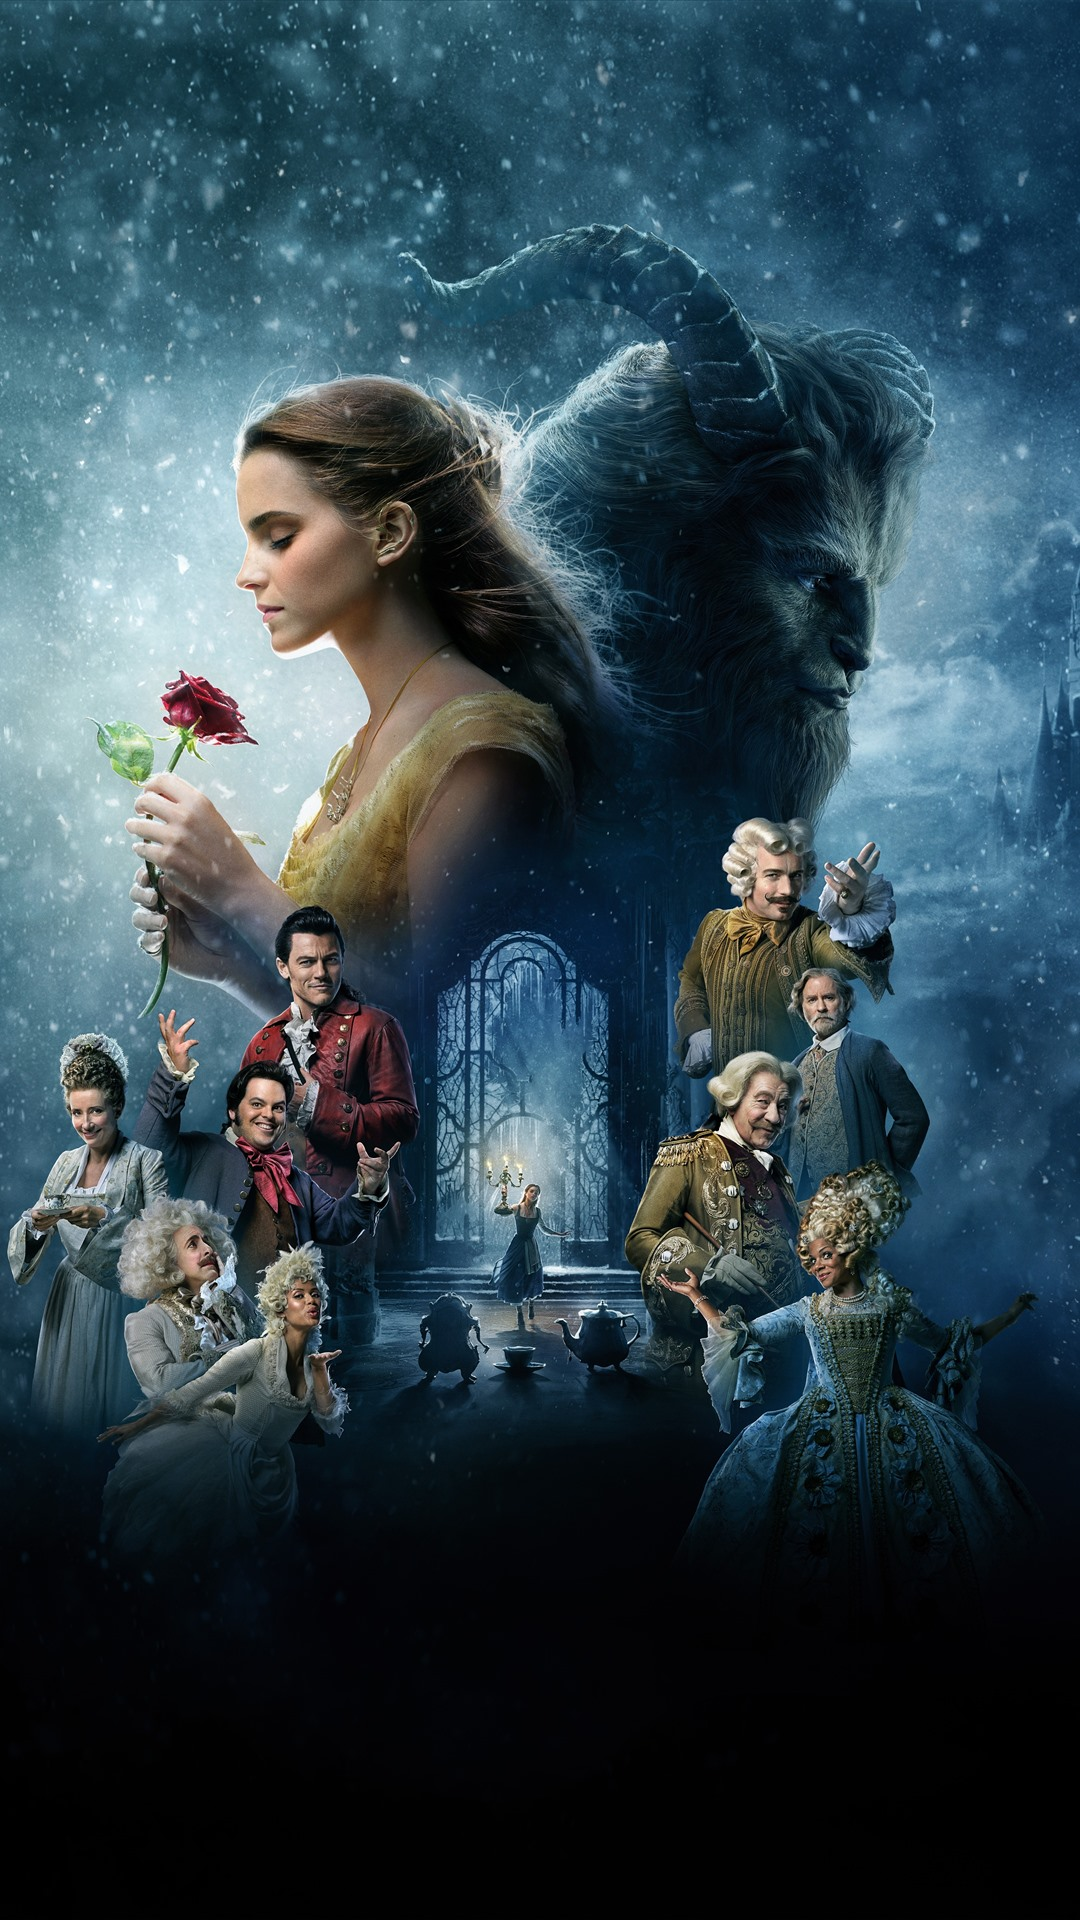 Disney Movie Beauty And The Beast 1242x2688 Iphone 11 Pro Xs Max